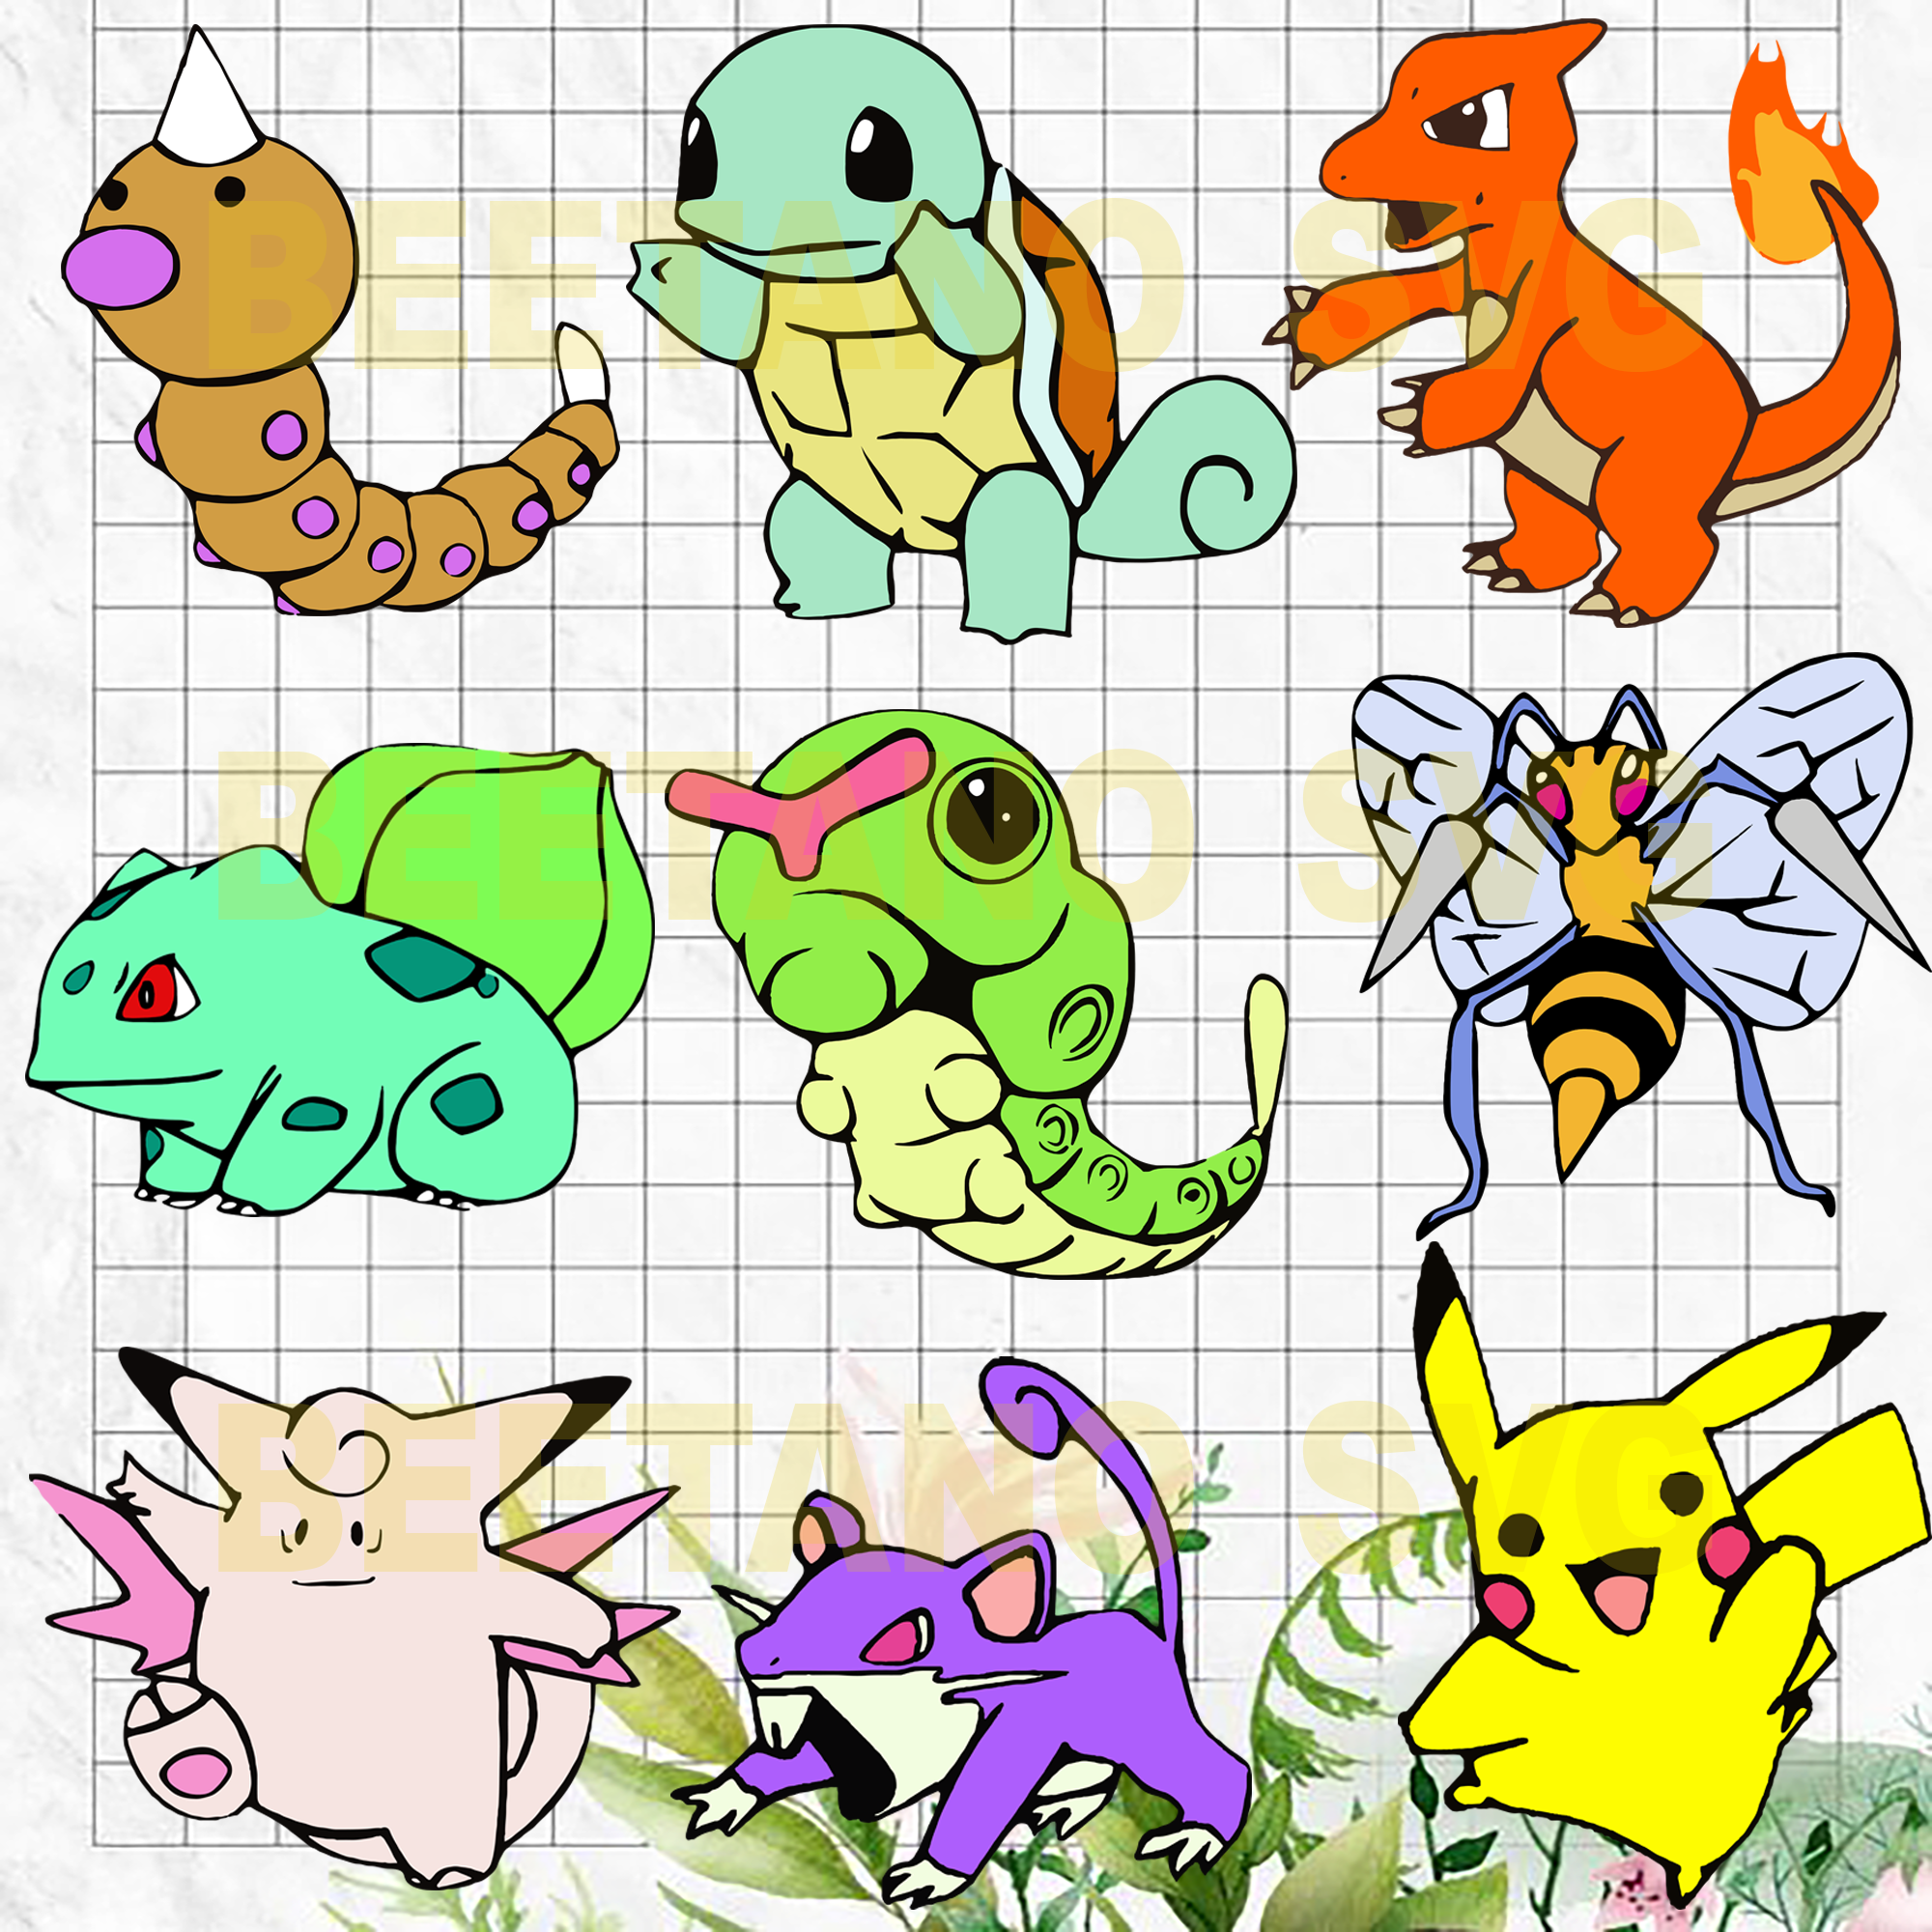 Pokemon Svg Bundle, Pokemon Character Svg Bundle, Pokemon Cutting Files, Pokemon Files For Cricut, Pokemon Cutting Files For Cricut, SVG, DXF, EPS, PNG Instant Download